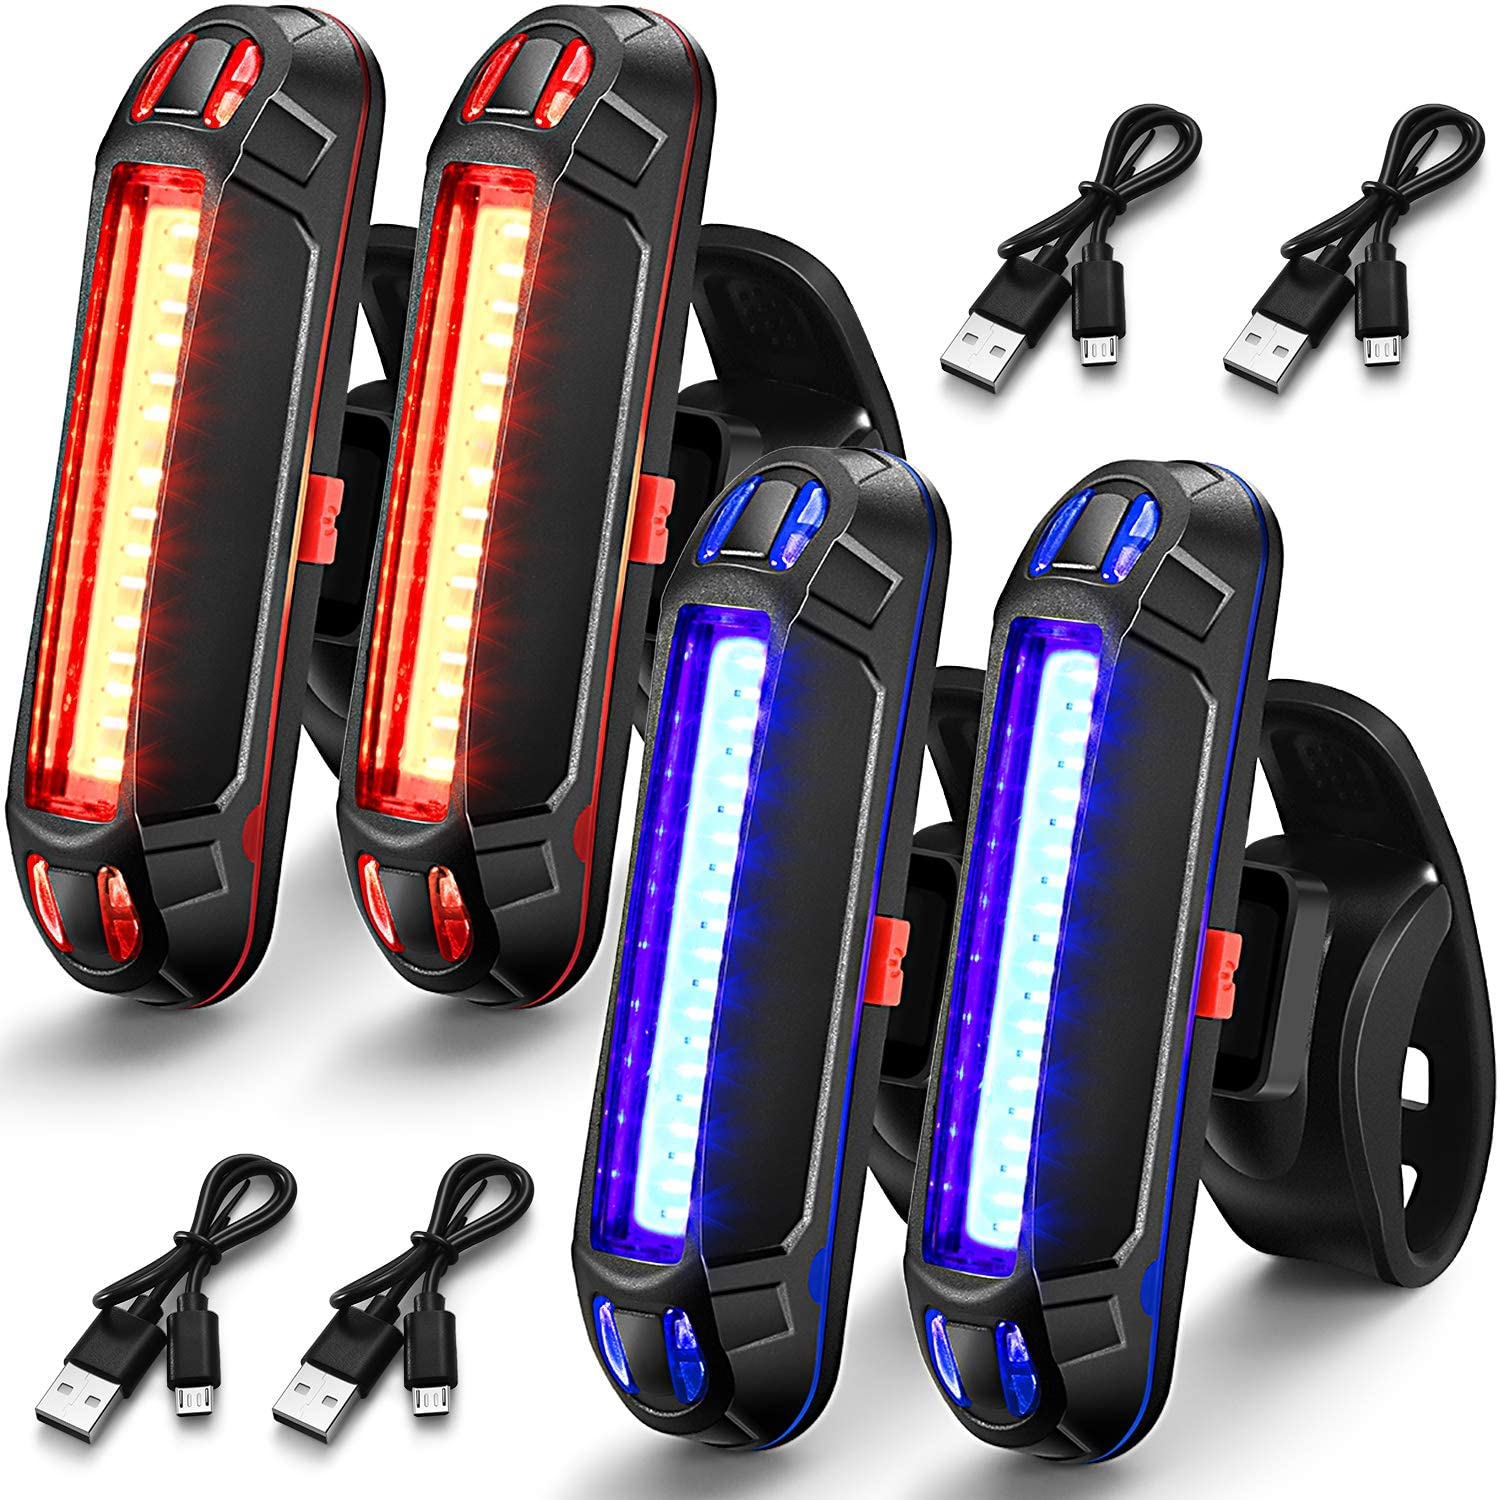 4 Pieces Bike Rear Tail Light USB Rechargeable Bicycle Taillight Ultra Bright Bicycle LED Safety Light Waterproof Cycling Taillight 7 Light Modes for Road Mountain Bike